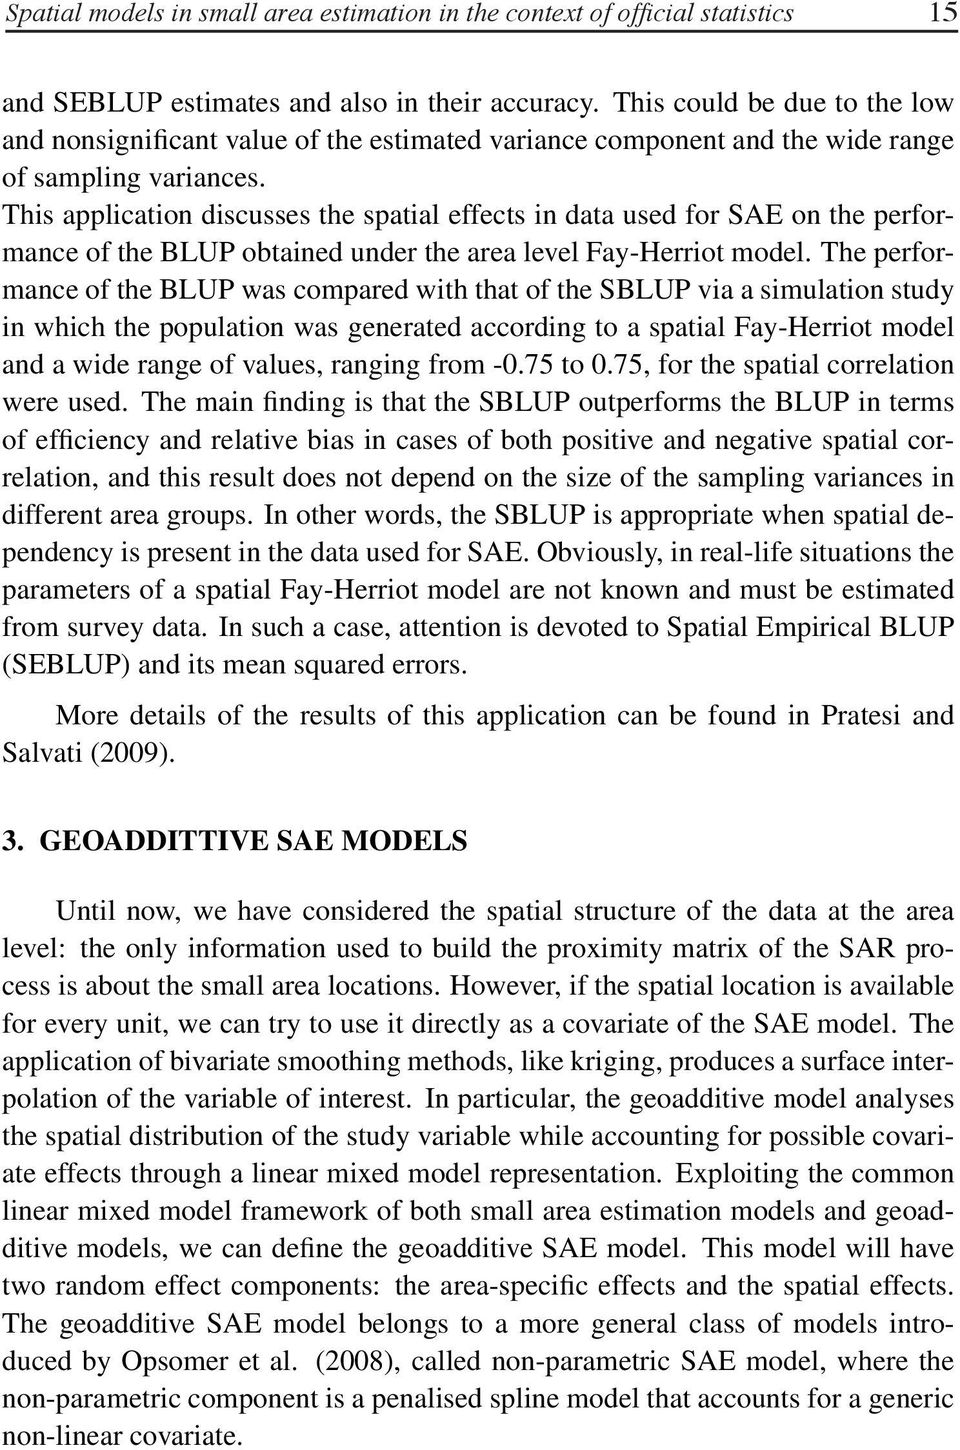 This application discusses the spatial effects in data used for SAE on the performance of the BLUP obtained under the area level Fay-Herriot model.